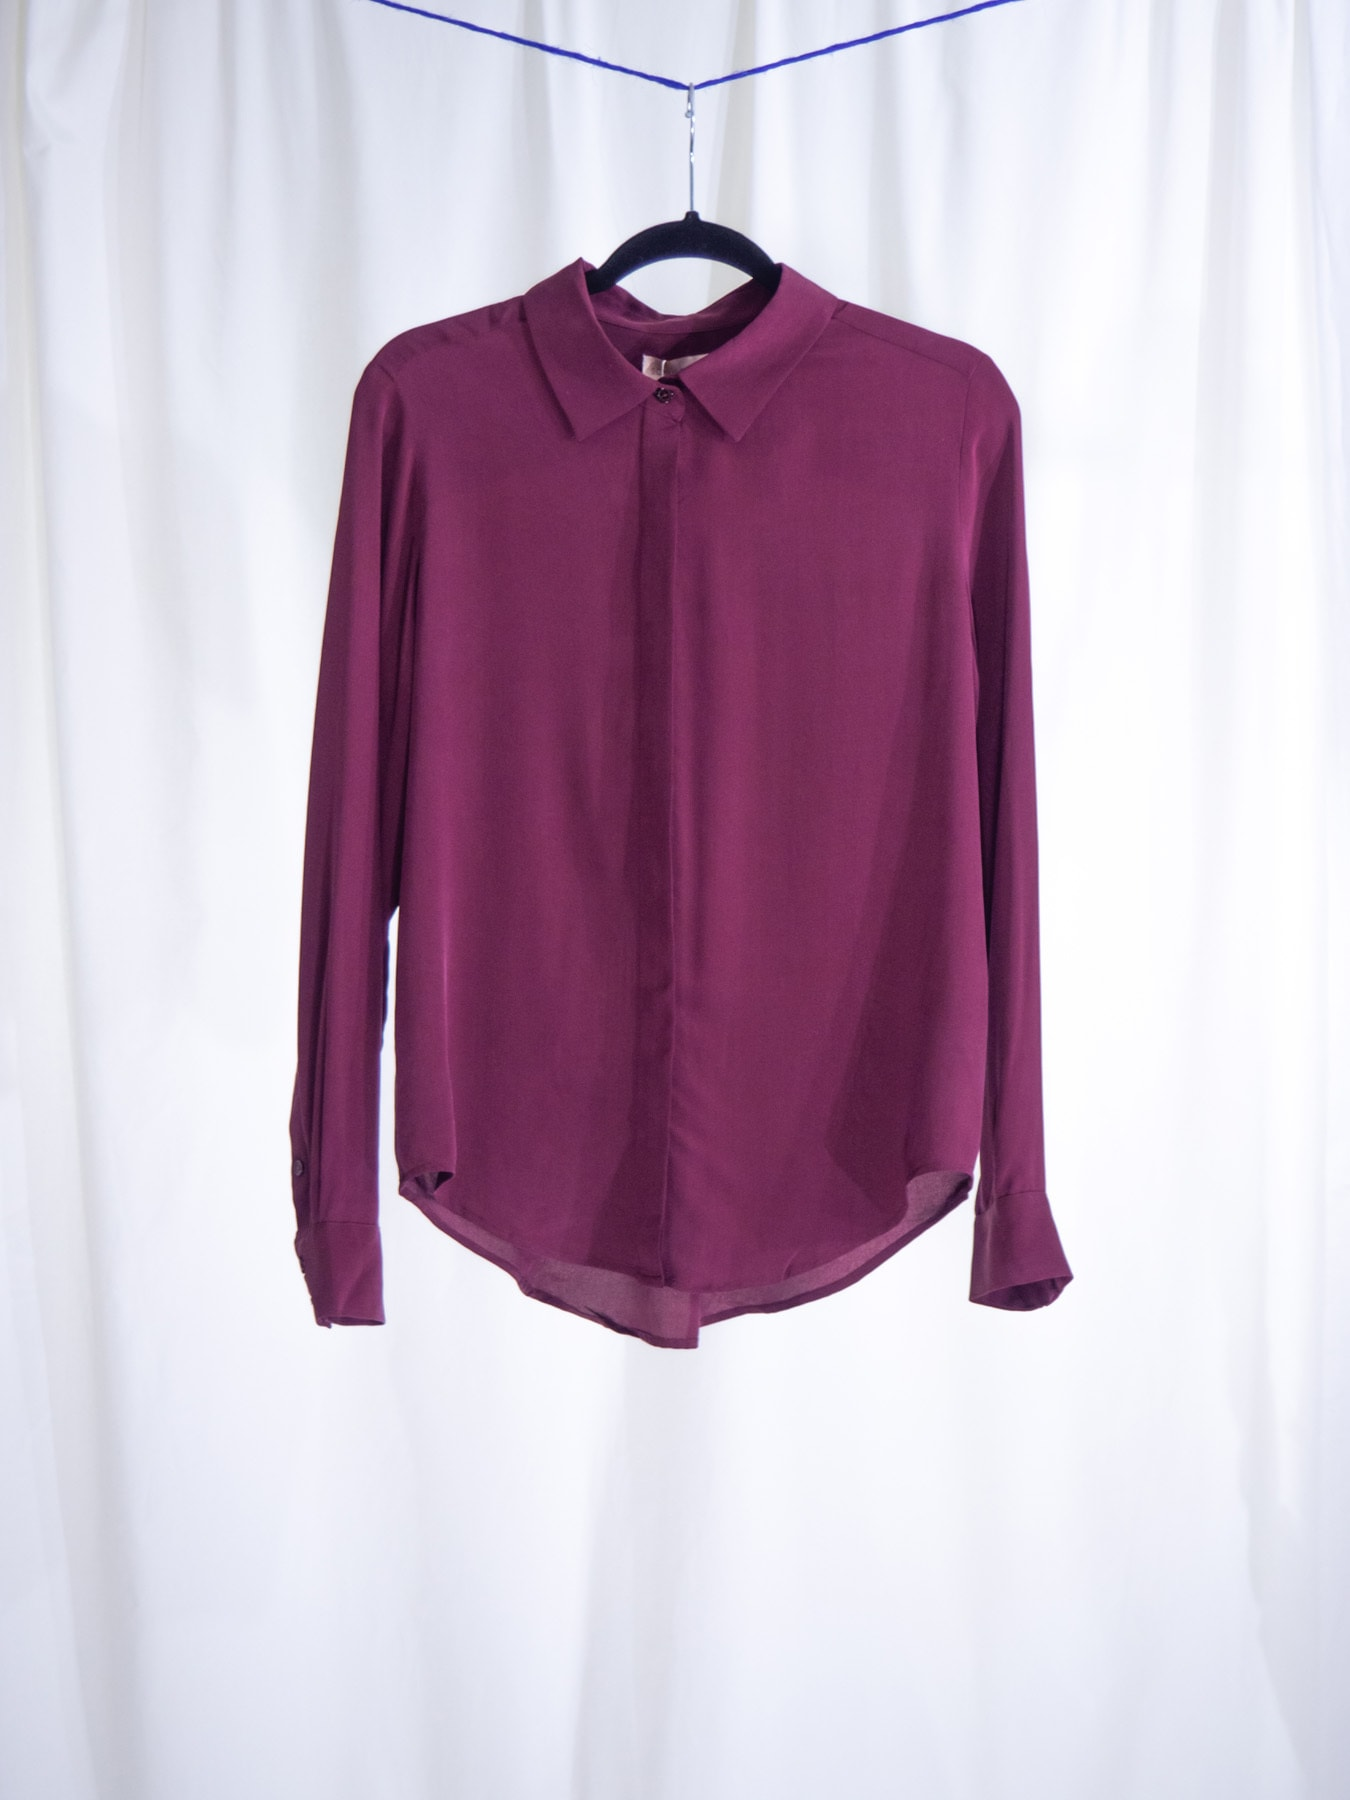 Sally shirt burgundy